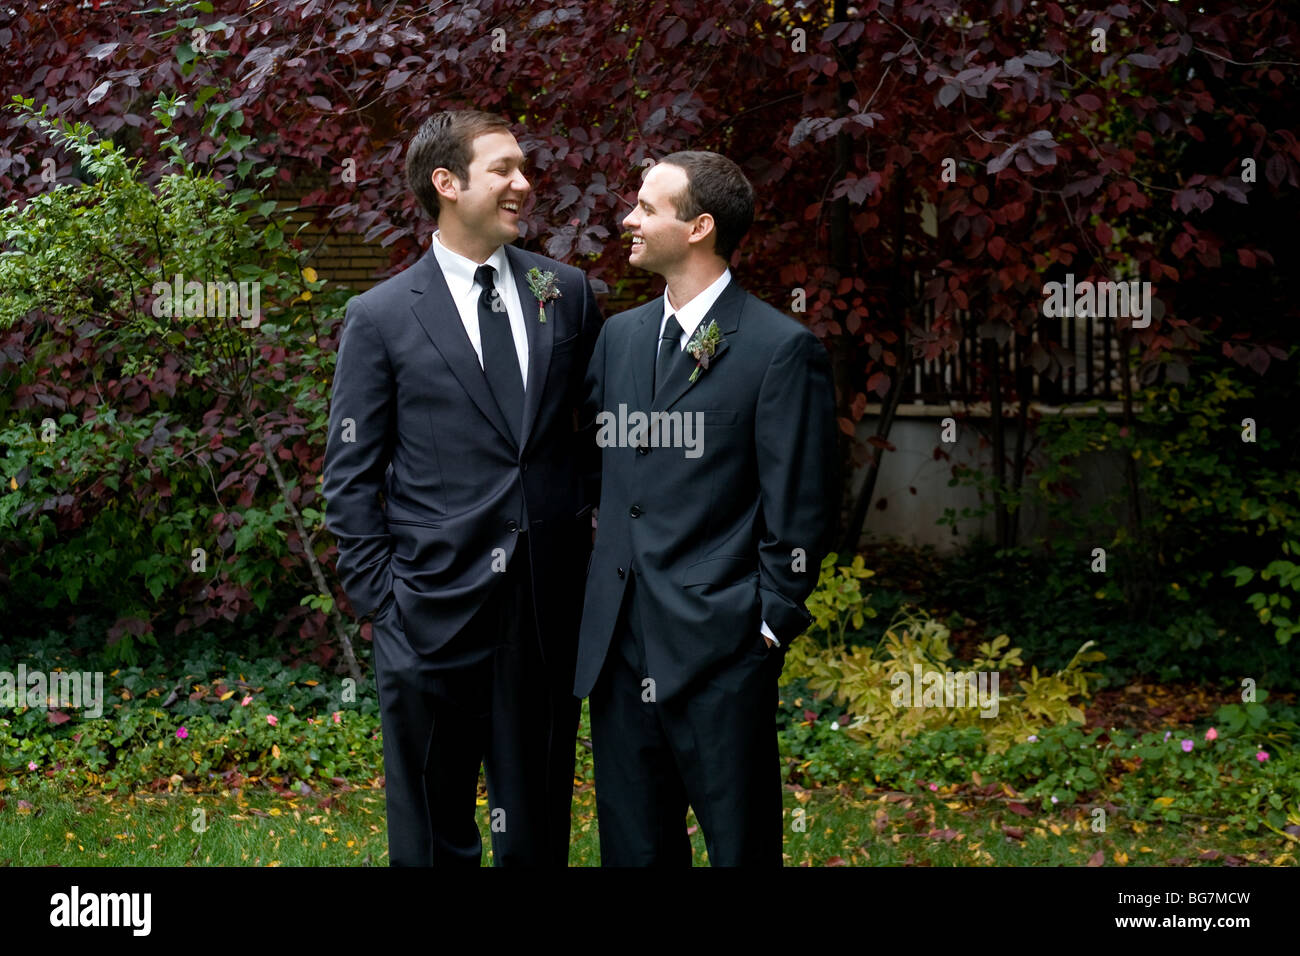 Wedding Gift Ideas For Older Gay Couple : Two gay men kissing and smiling after their wedding Stock Photo ...